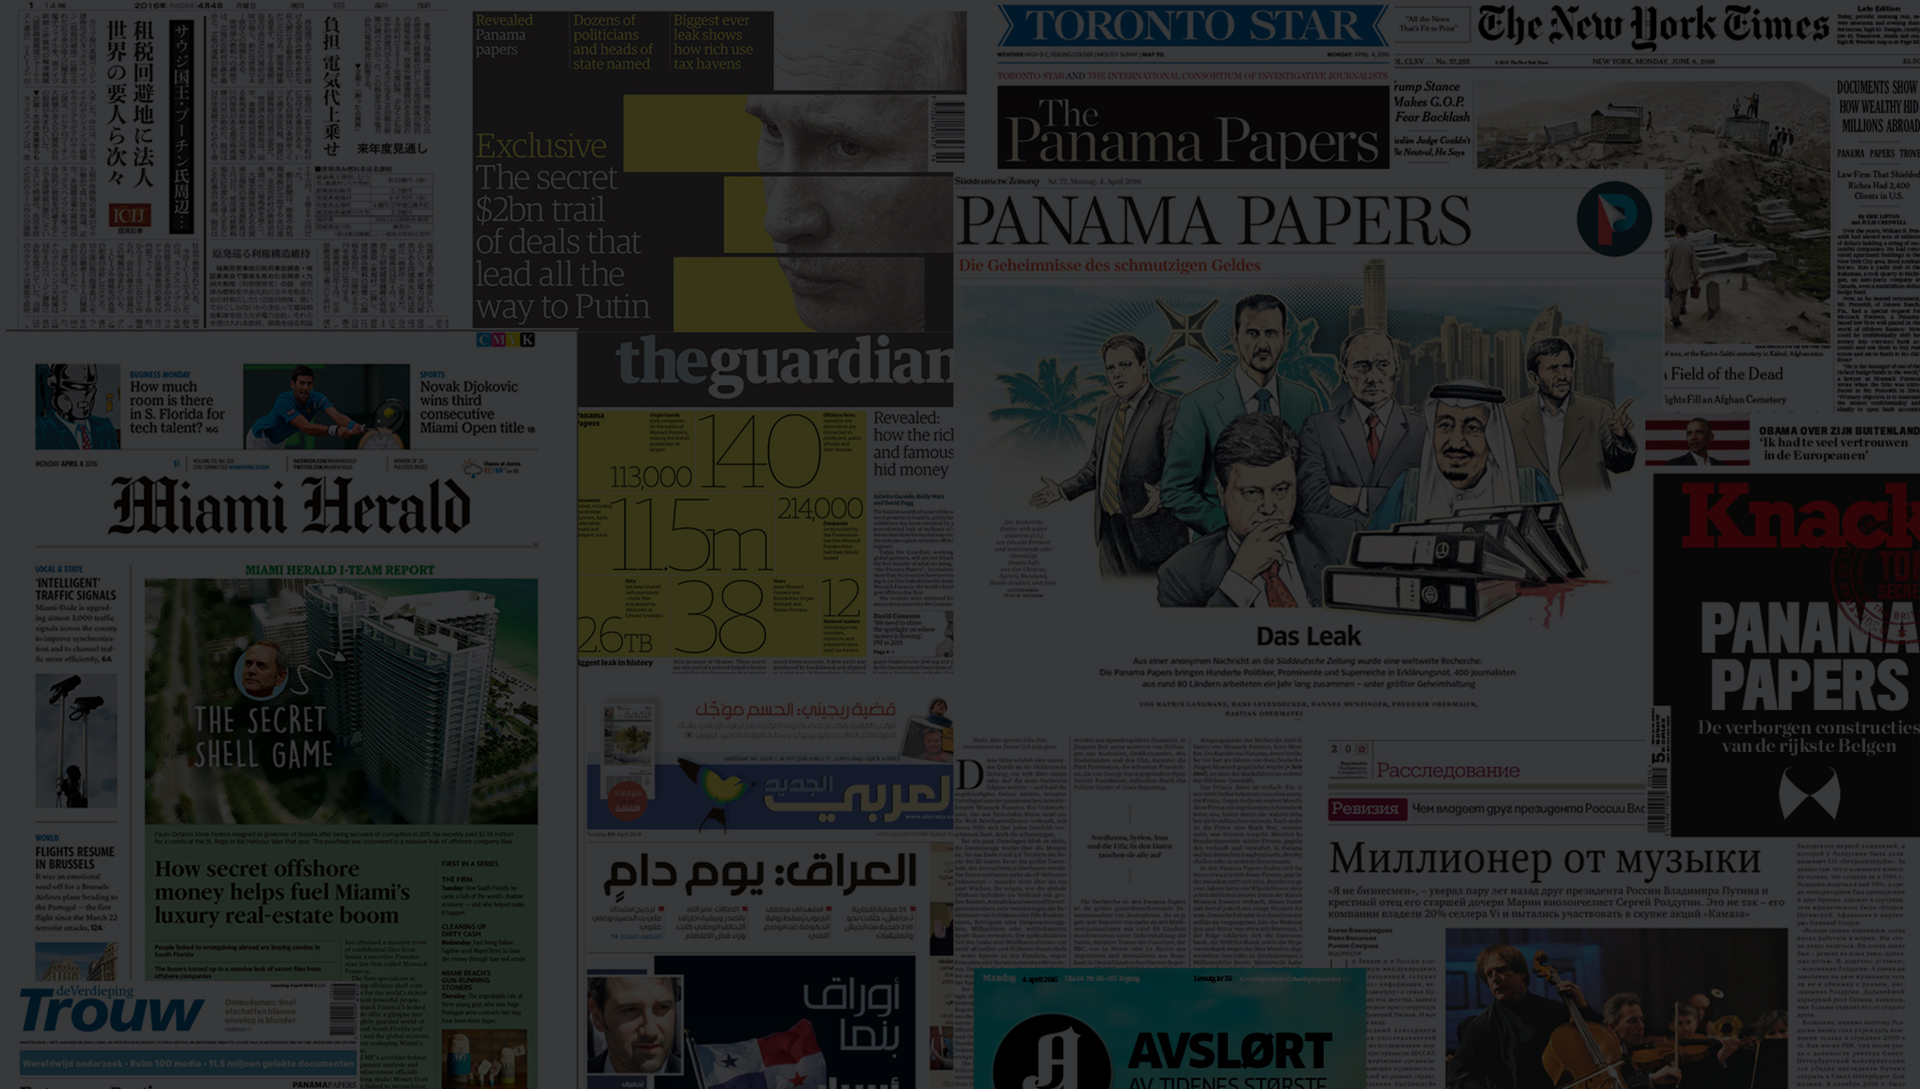 Panama Papers headlines